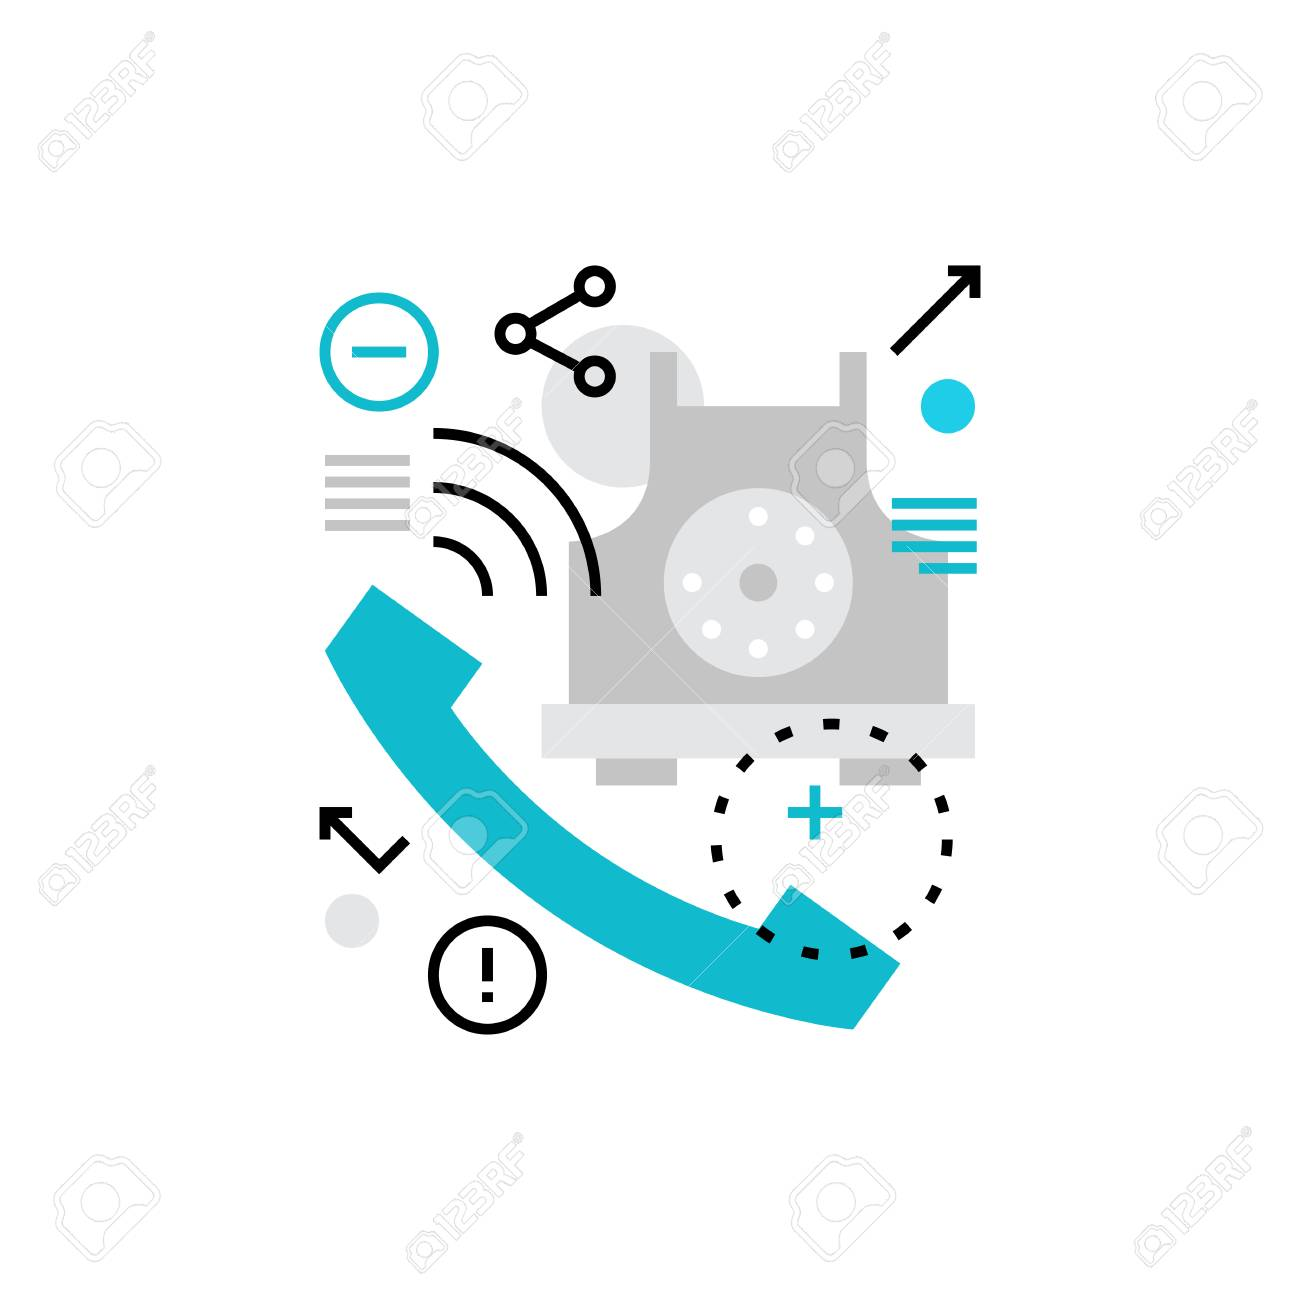 modern vector icon of telephone conversation, business and private  communication  premium quality vector illustration